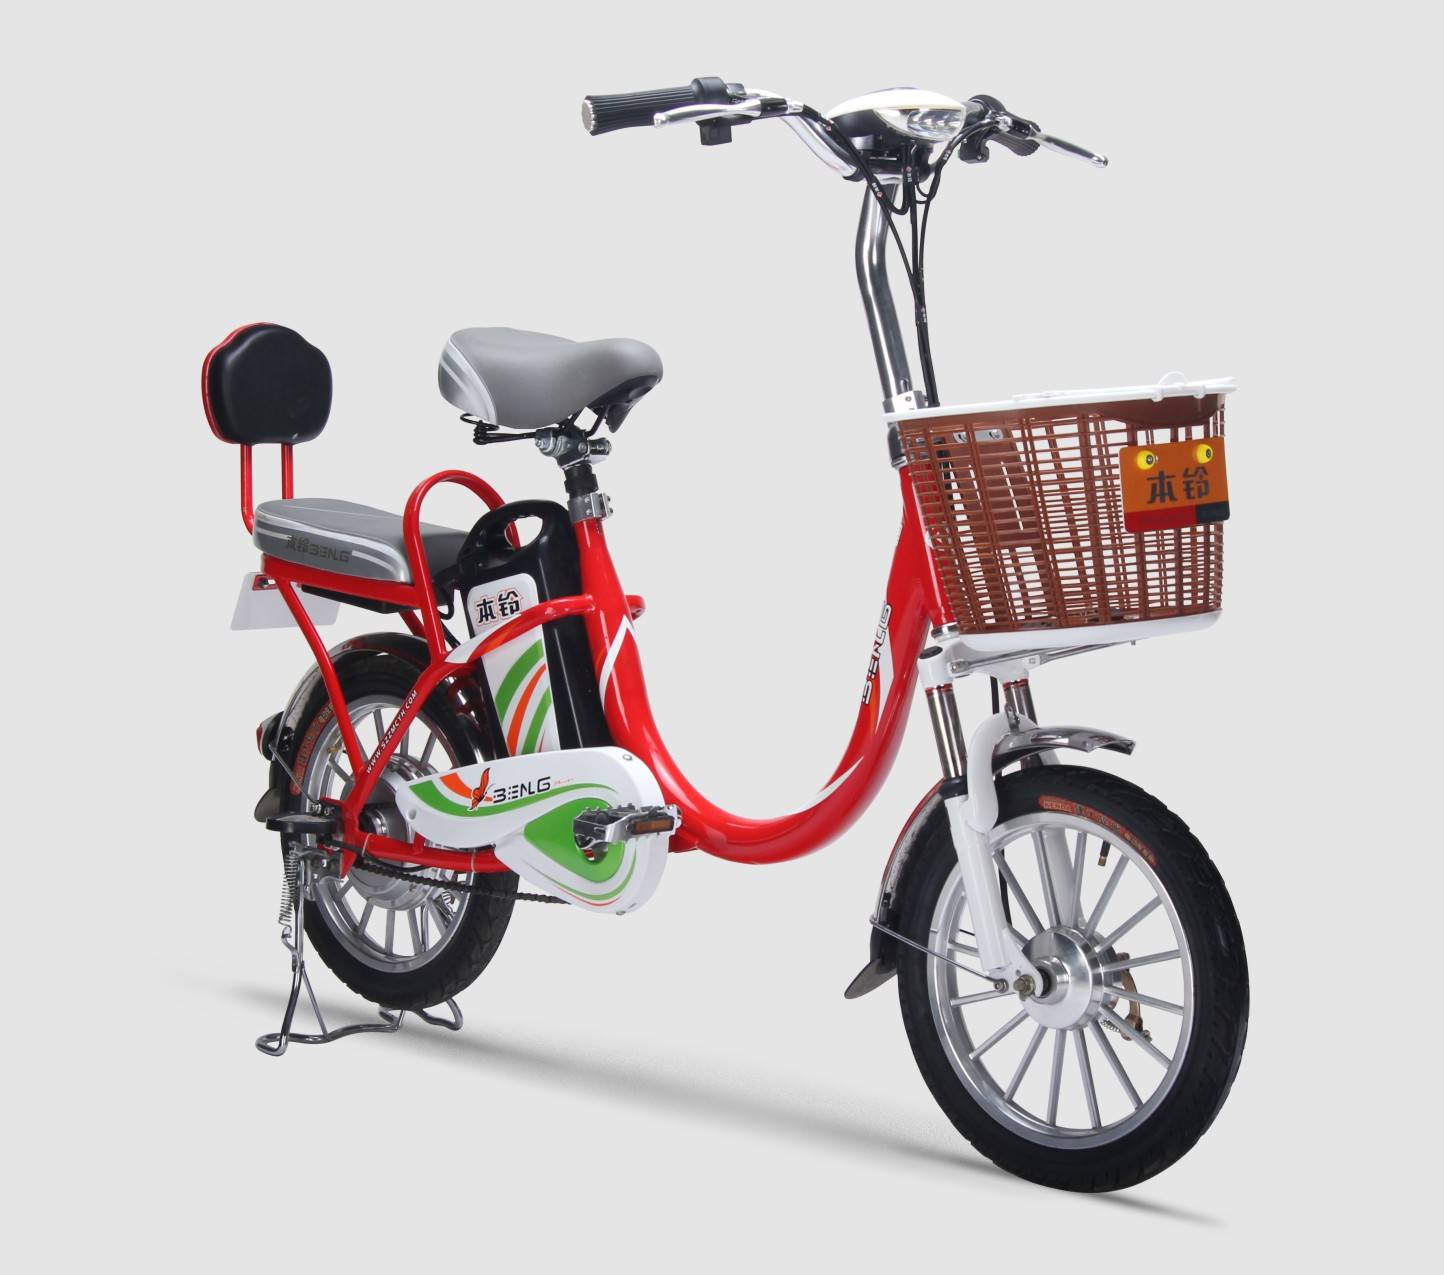 e-bike small student's electric bike lithum ebike